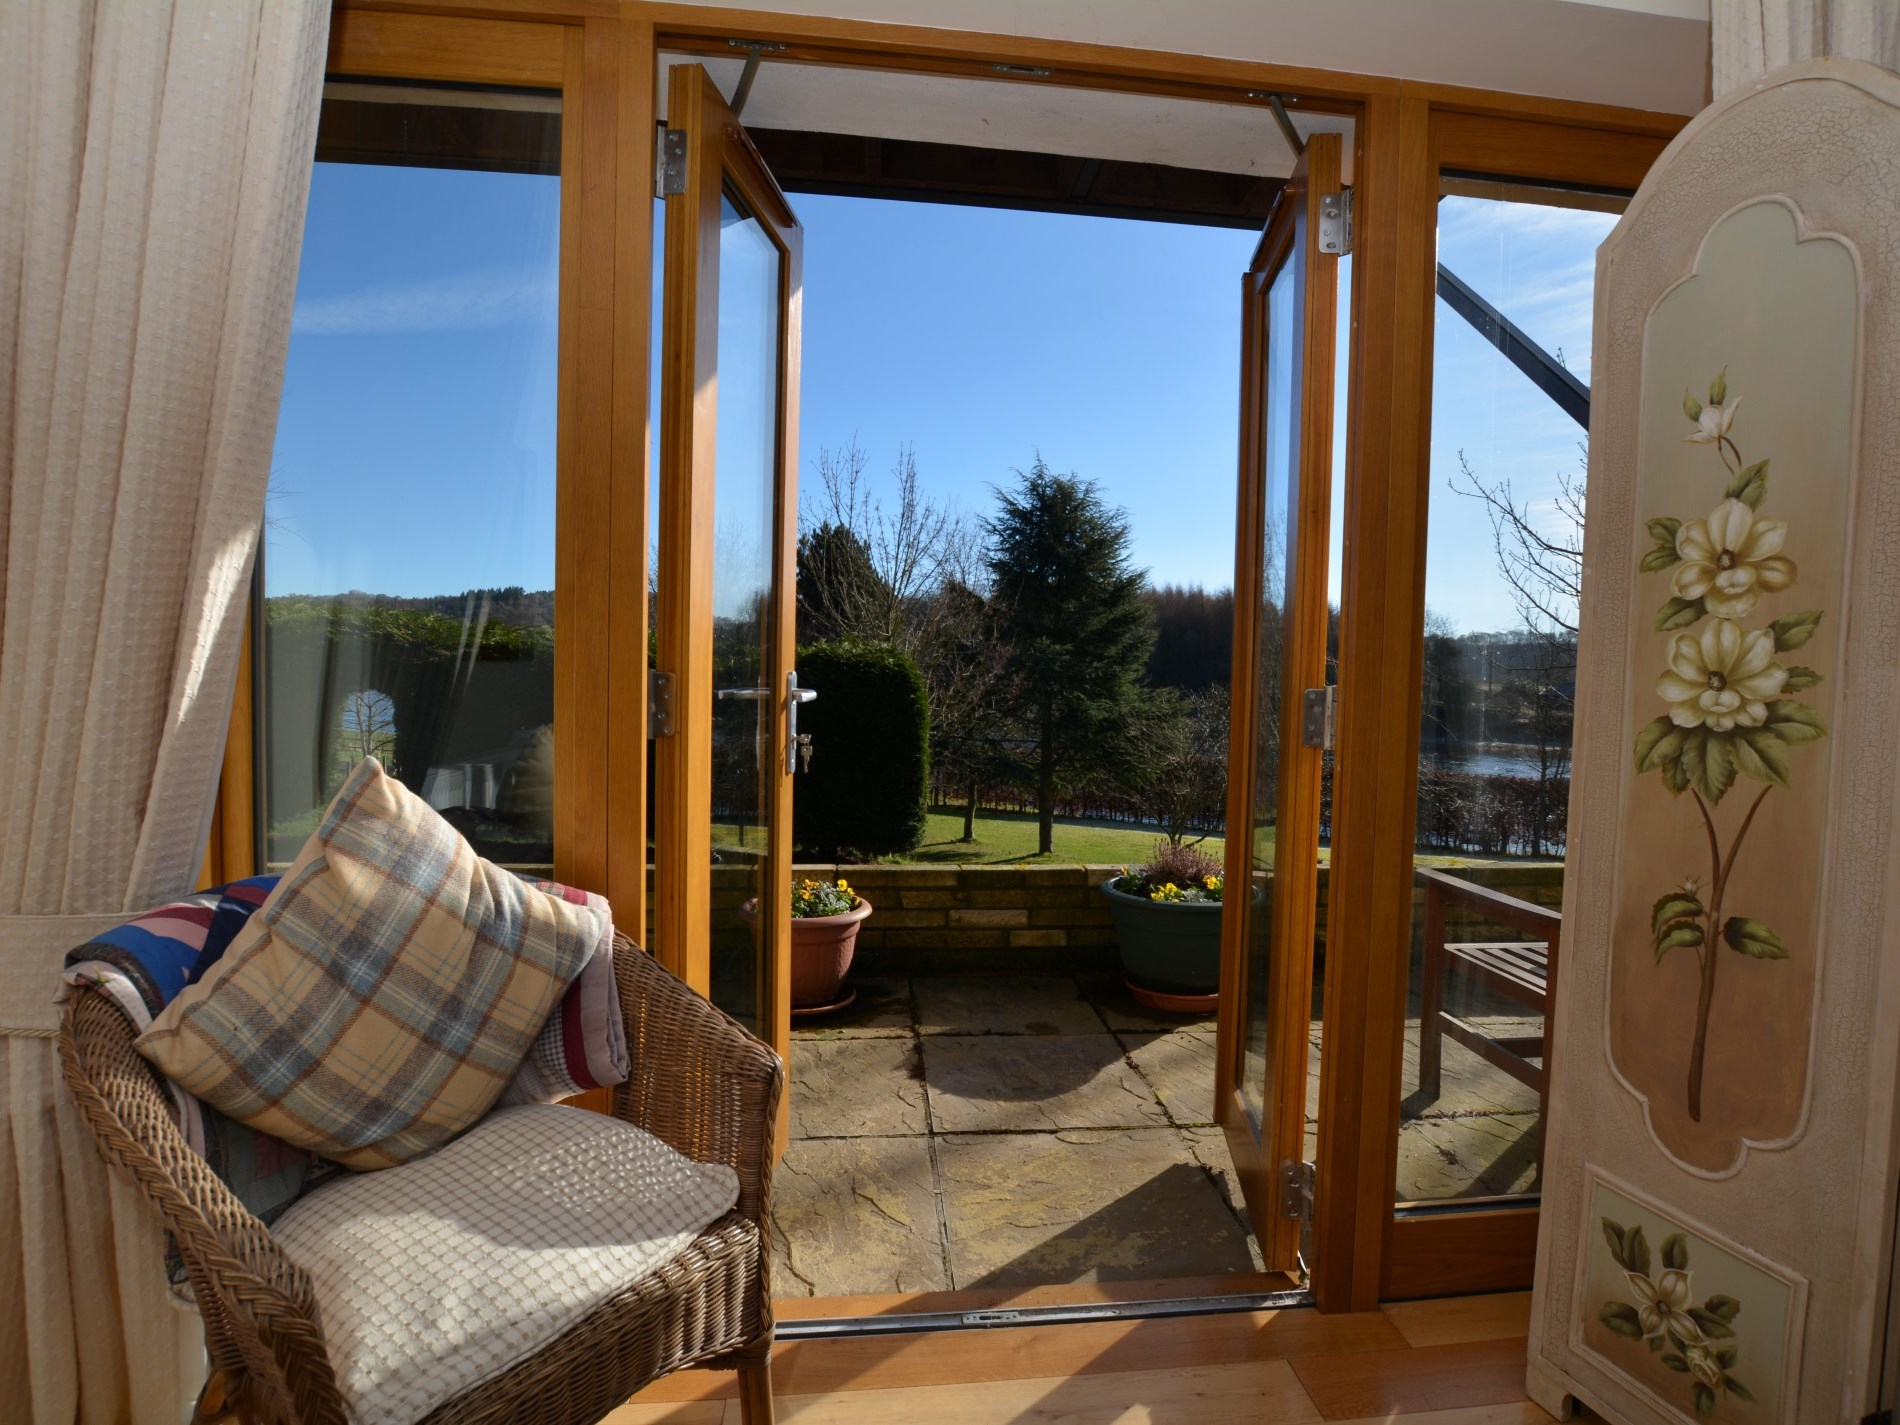 3 Bedroom Cottage in Perth, Perthshire, Angus & Fife